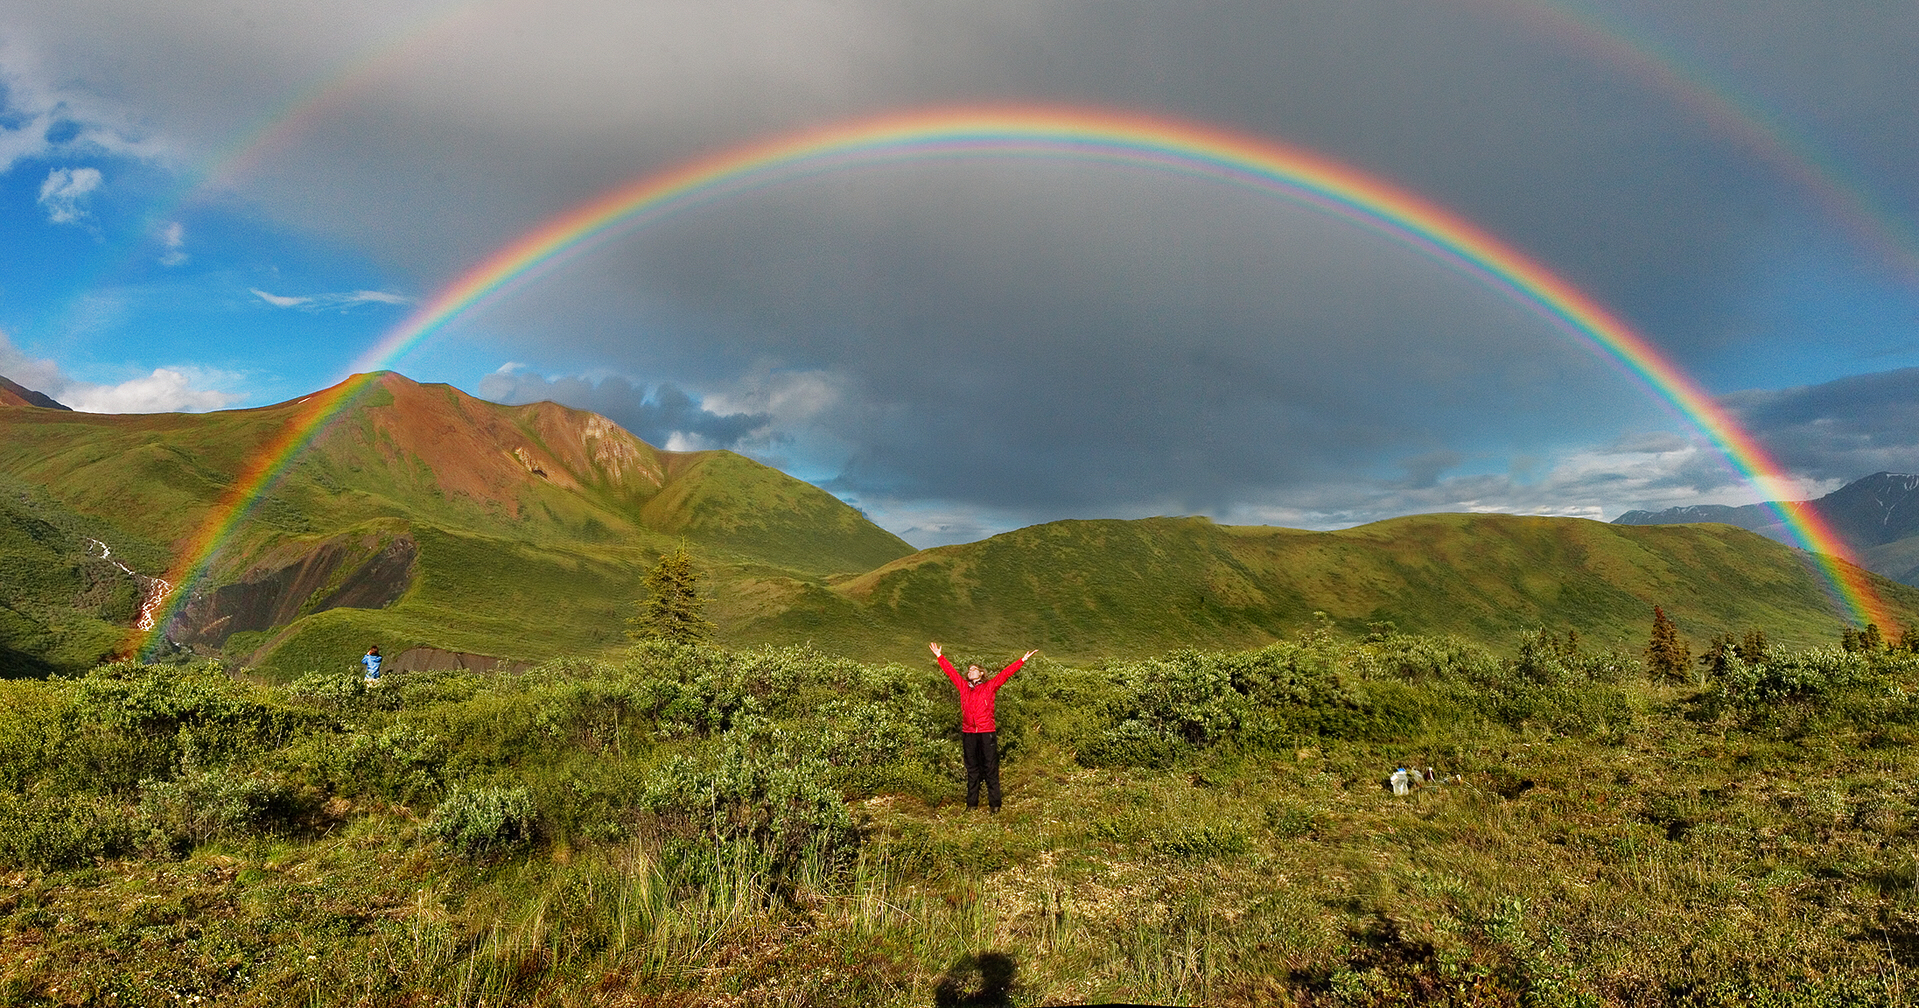 Image-from-http-upload-wikimedia-org-wikipedia-commons-c-Double-alaskan-rainbow-wallpaper-wp3407300